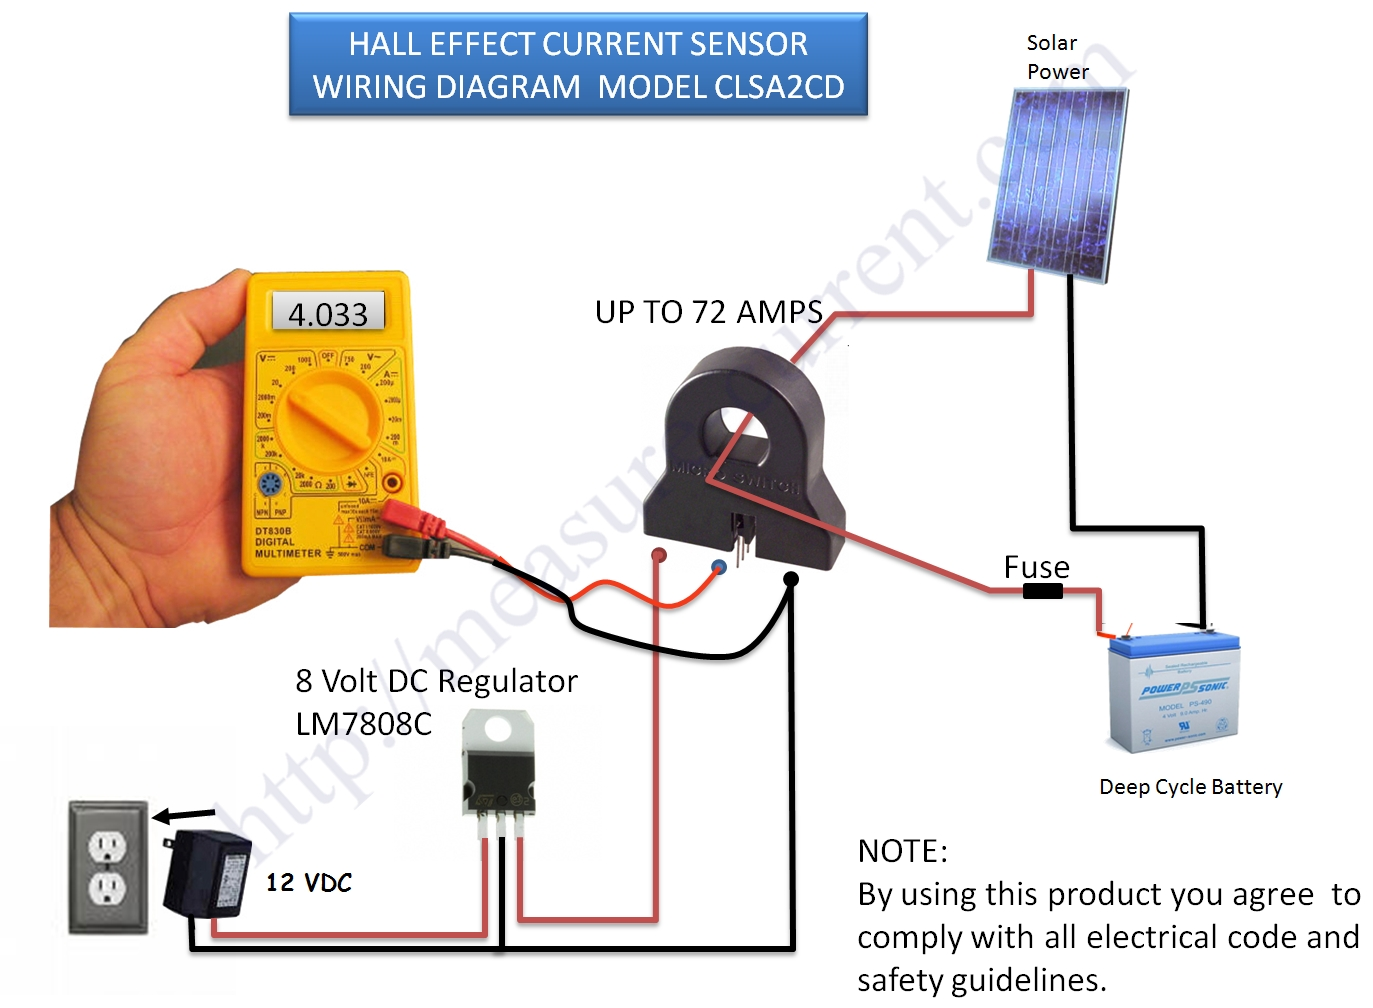 Eddy Current Sensor Circuit Diagram http://www.scienceshareware.com/how-to-measure-AC-DC-current-with-a-hall-effect-clamp-.htm